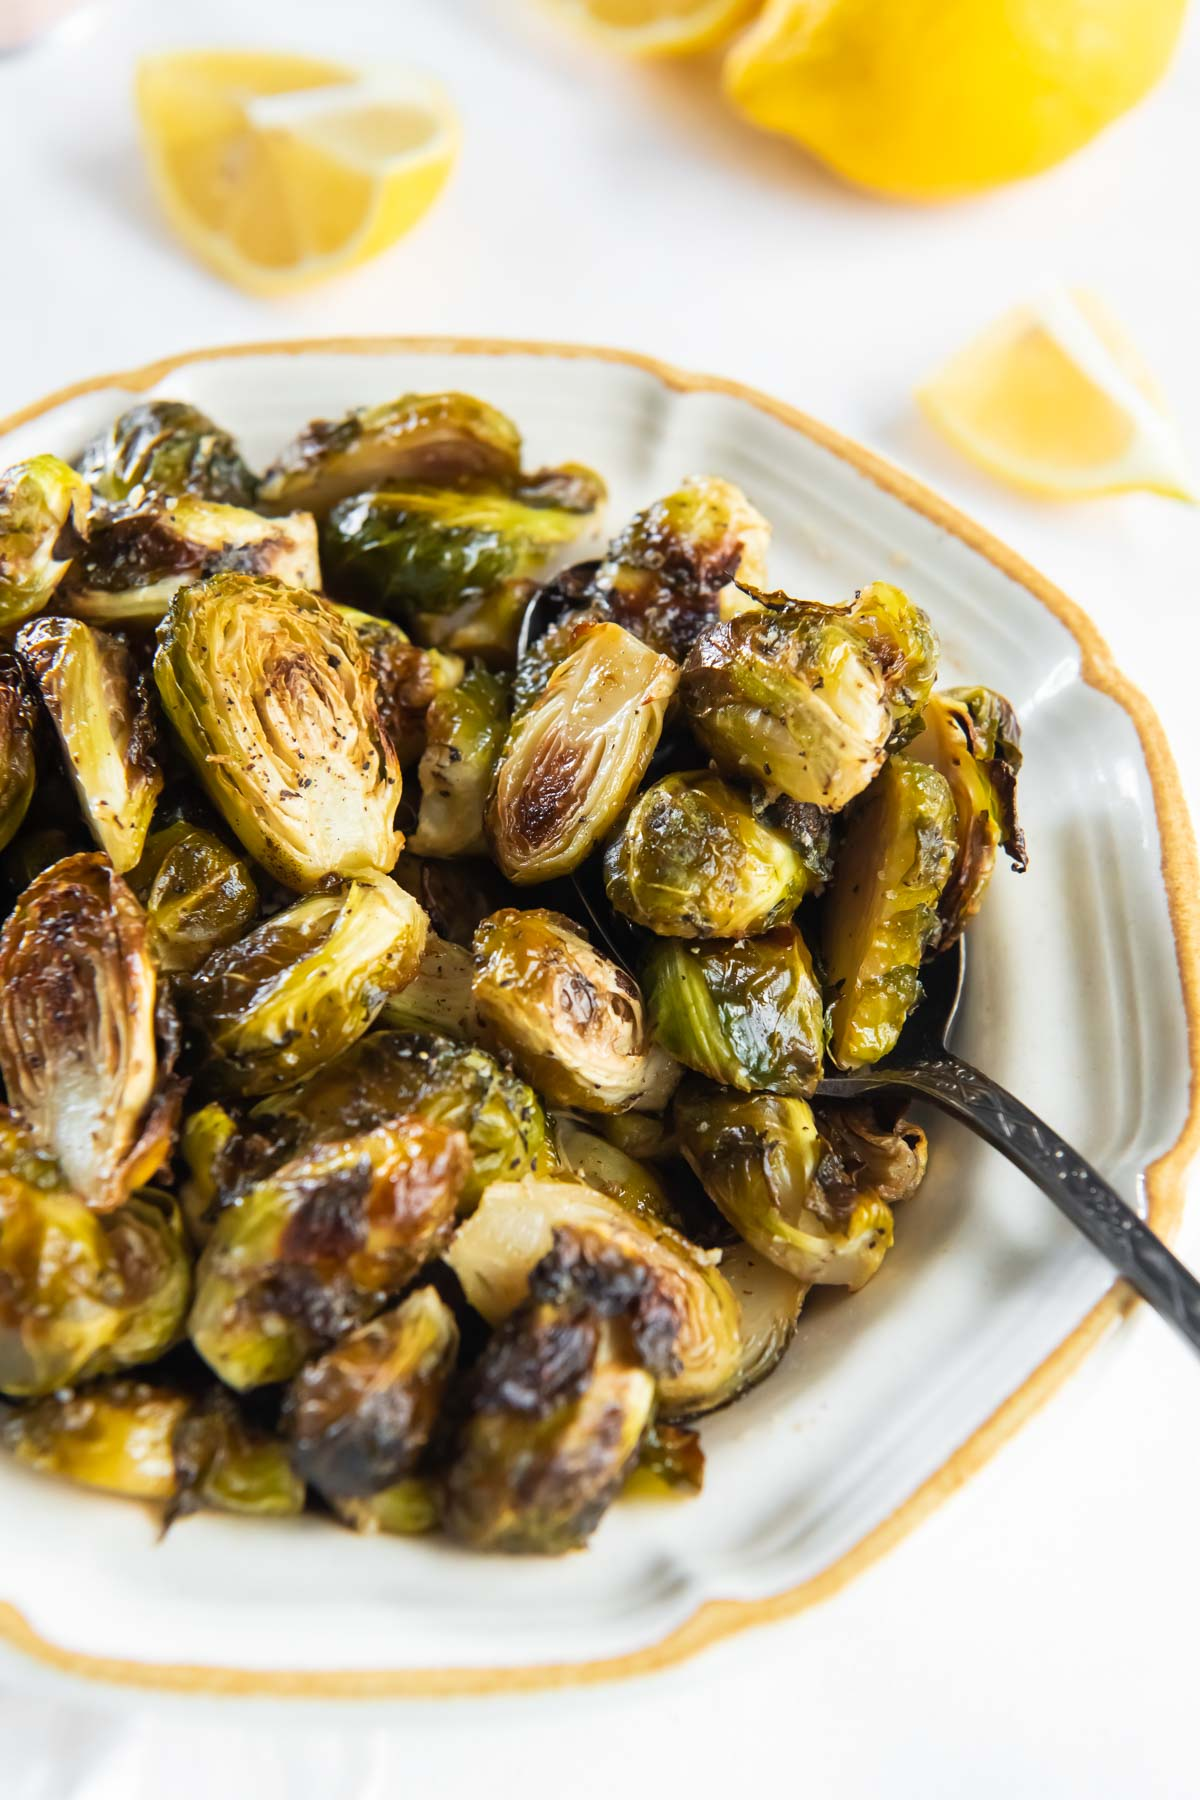 roasted brussels sprouts in a serving dish with a spoon